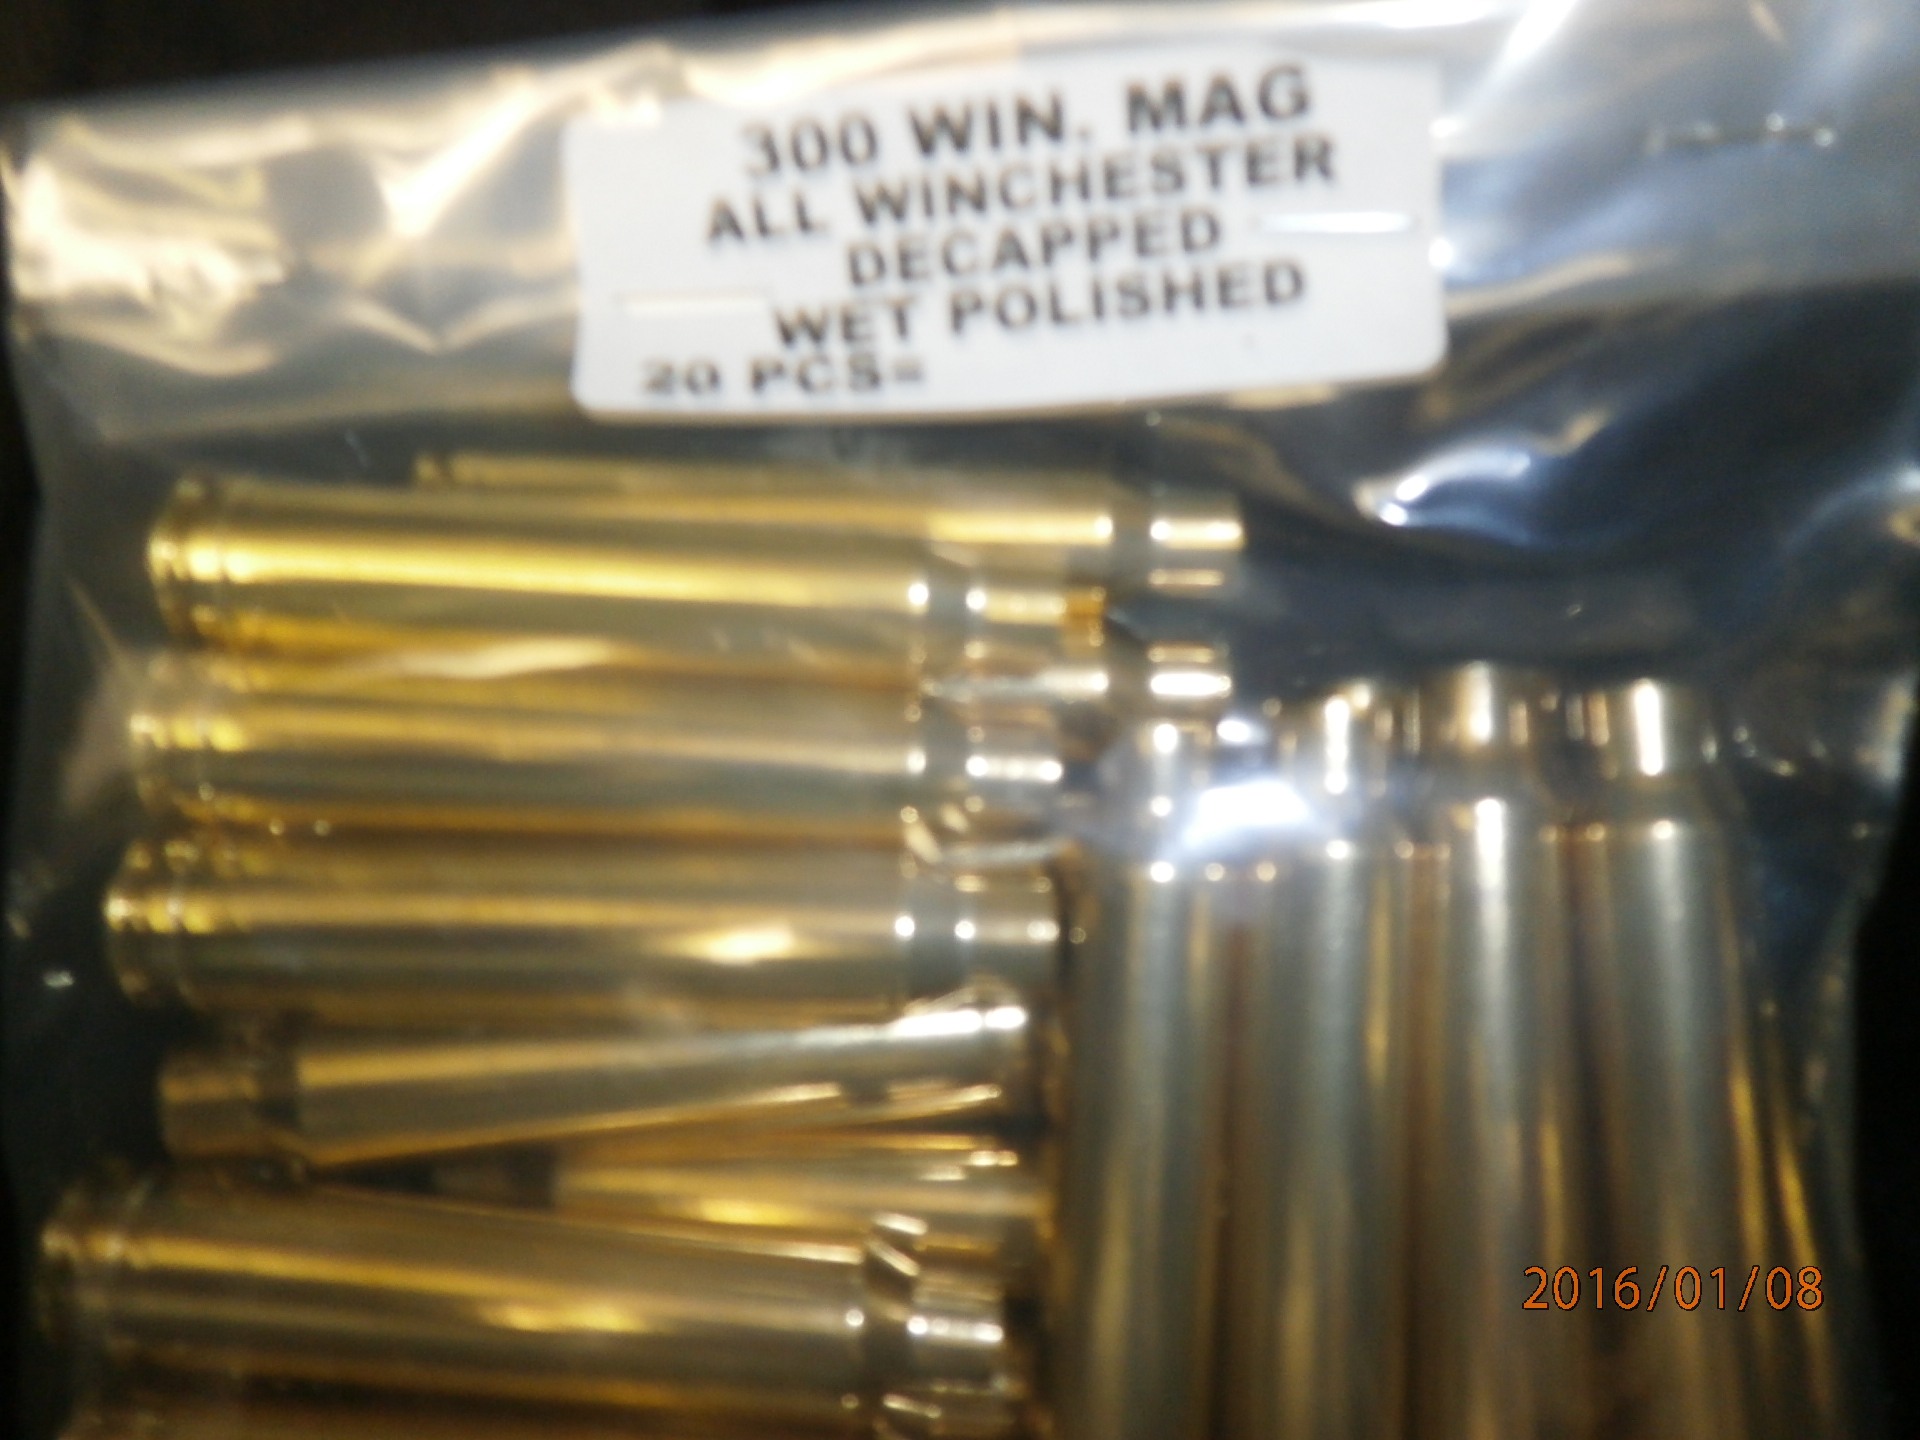 WET POLISHED 300 WIN MAG BRASS